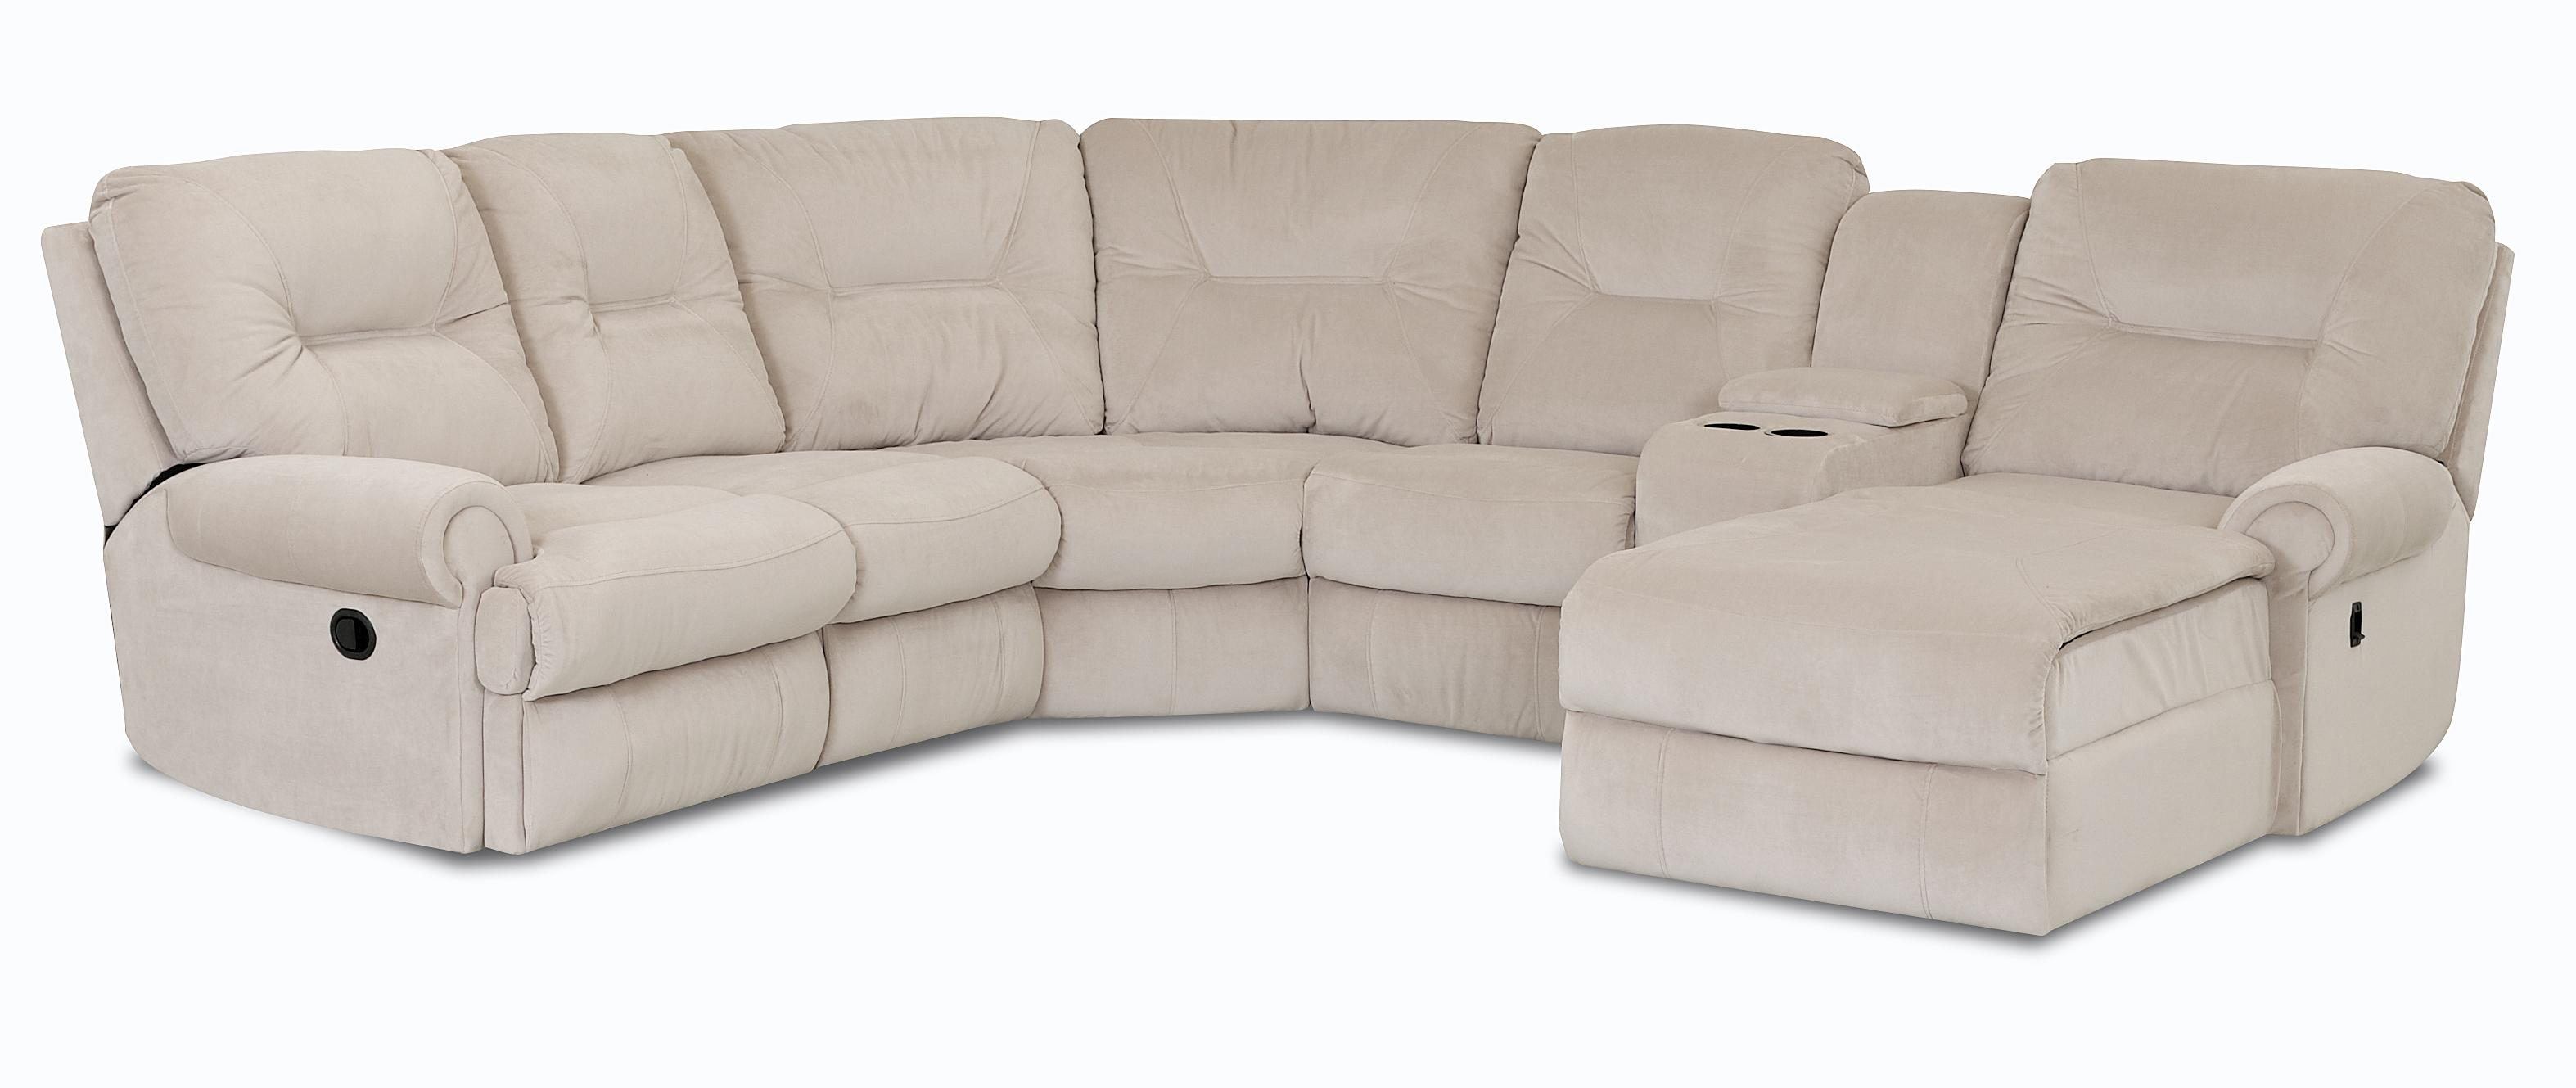 Traditional Reclining Sectional Sofa by Klaussner  Wolf